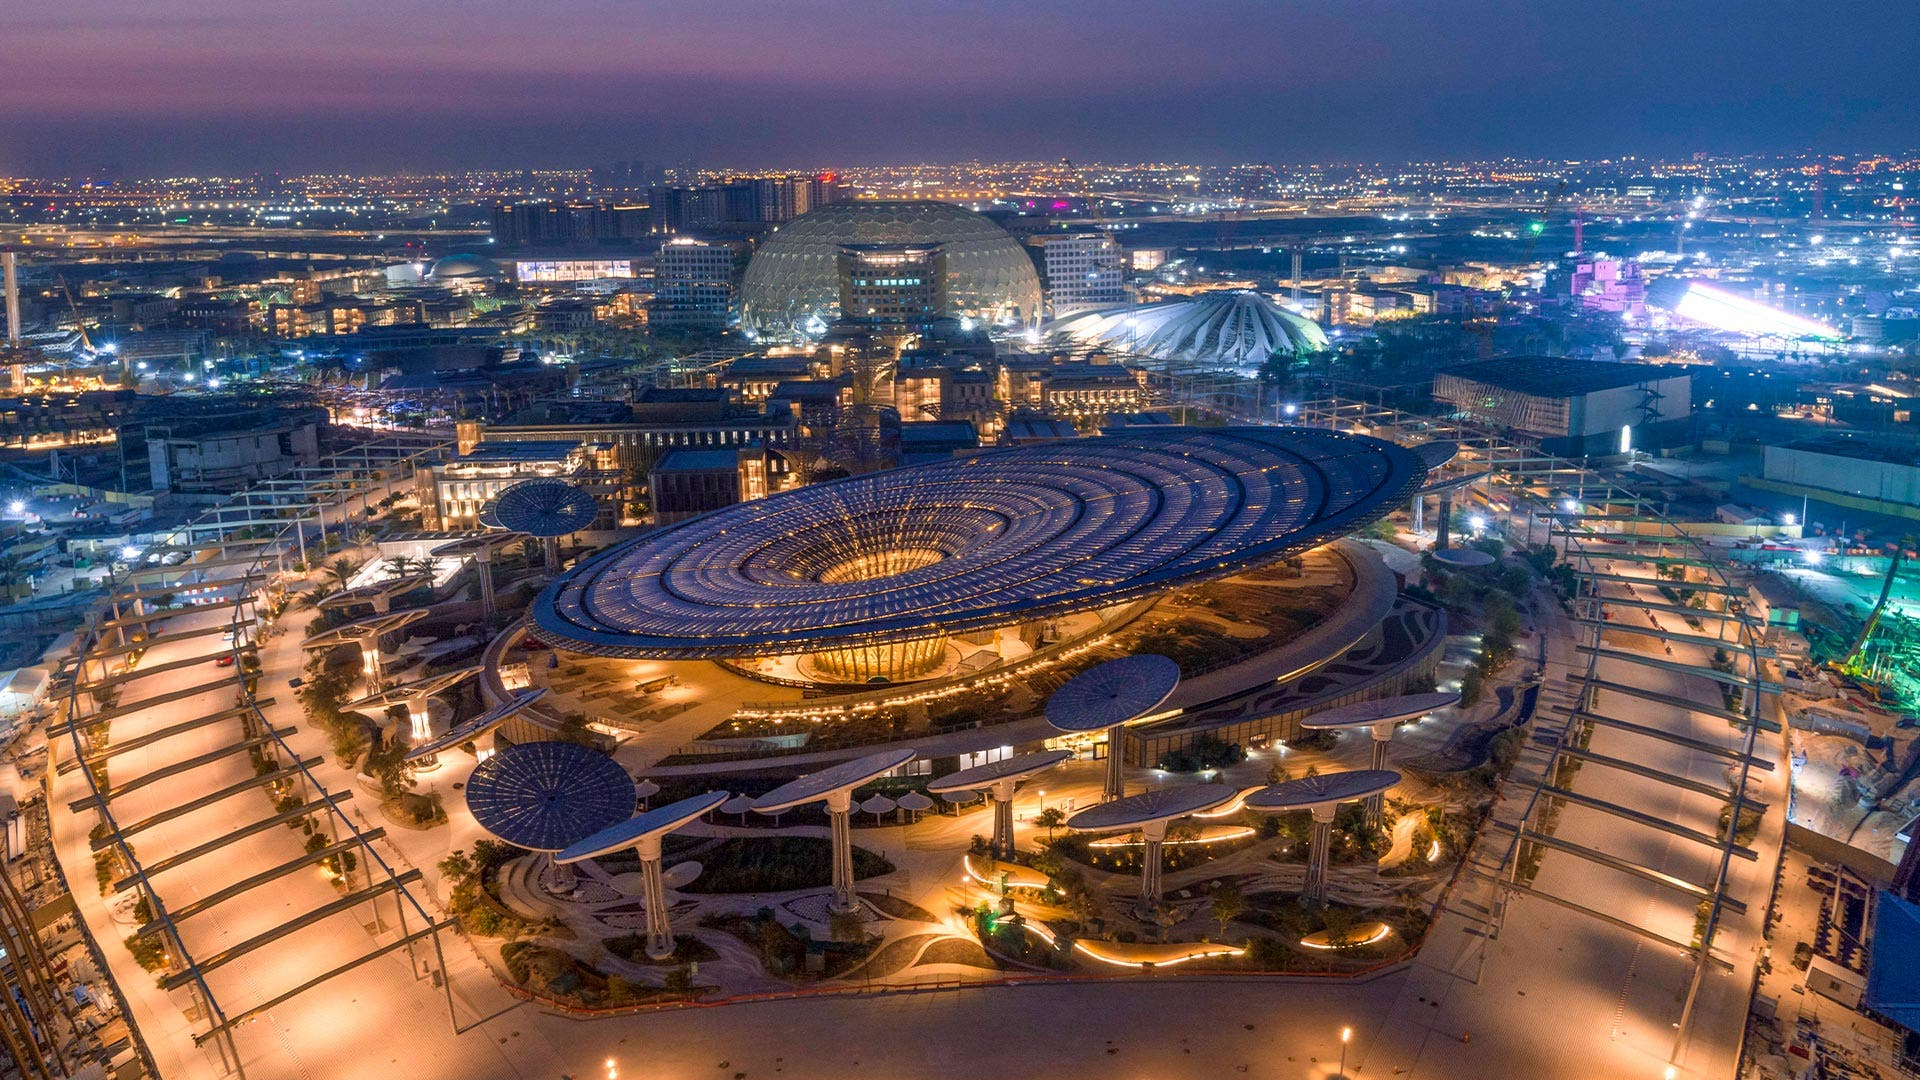 """Expo 2020 Dubai runs from October 1, 2021 to March 31, 2022, under the theme """"Connecting Minds, Creating the Future."""" (Supplied)"""